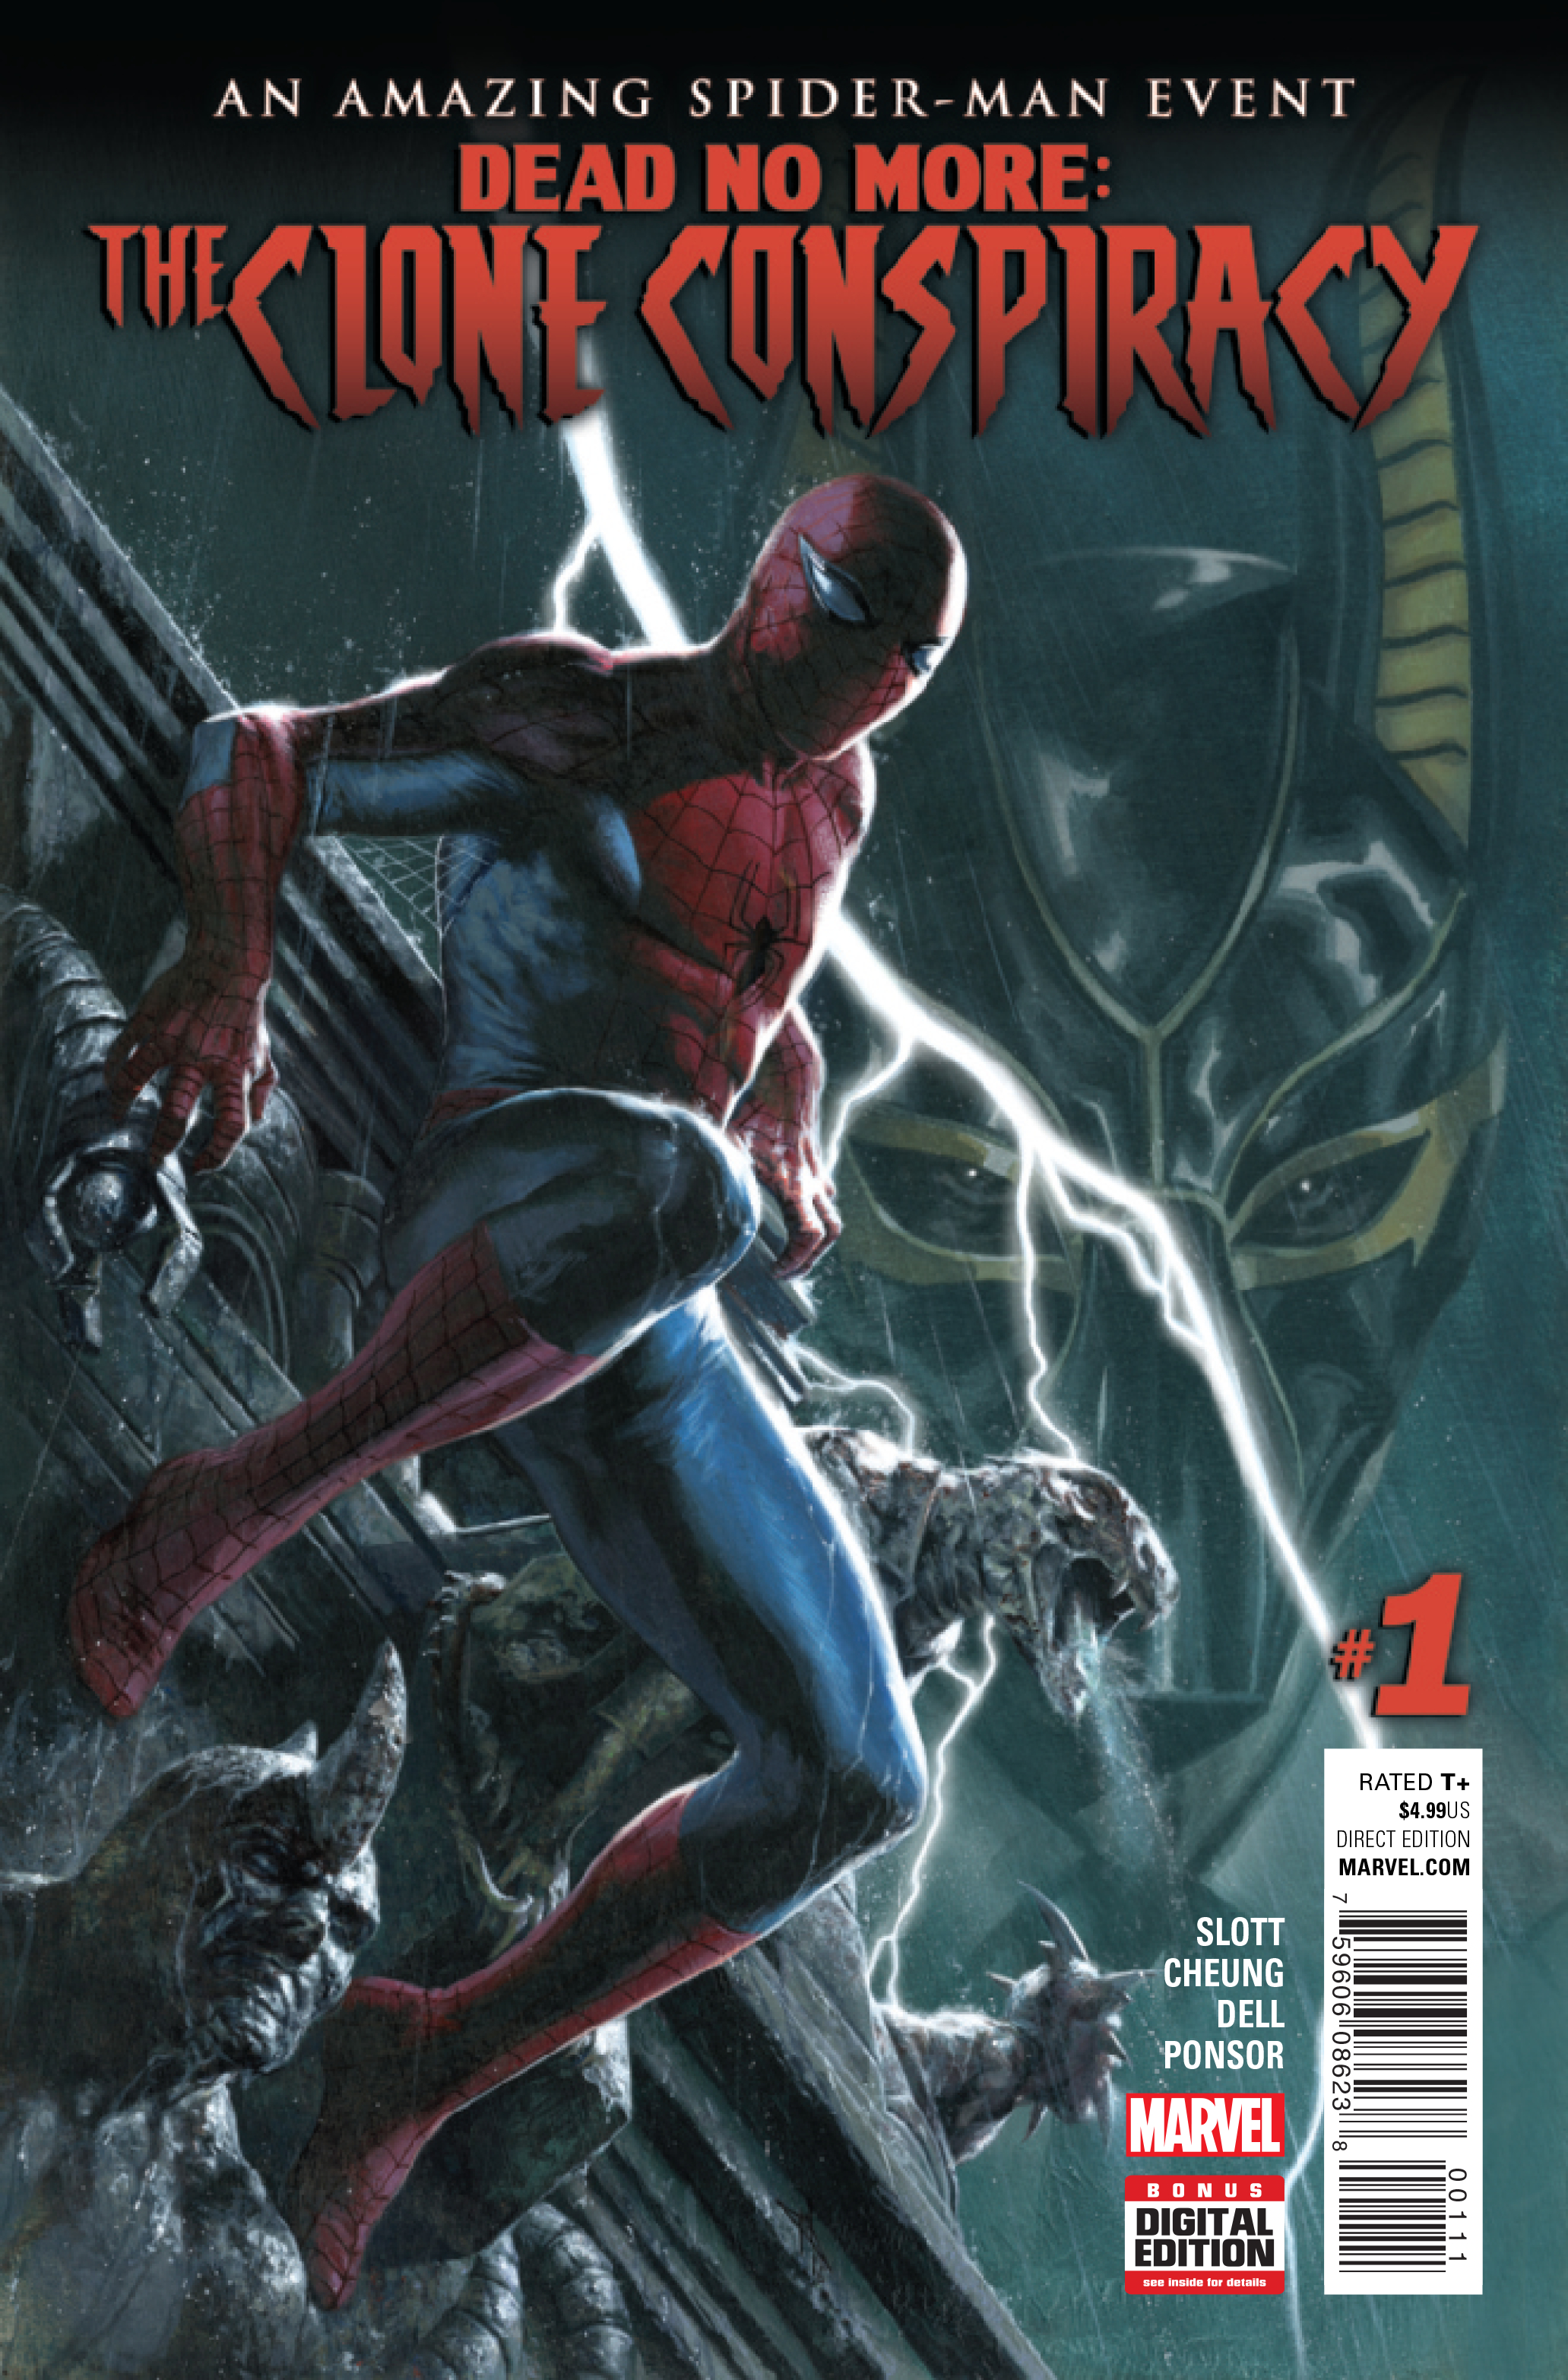 CLONE CONSPIRACY #1 (OF 5)